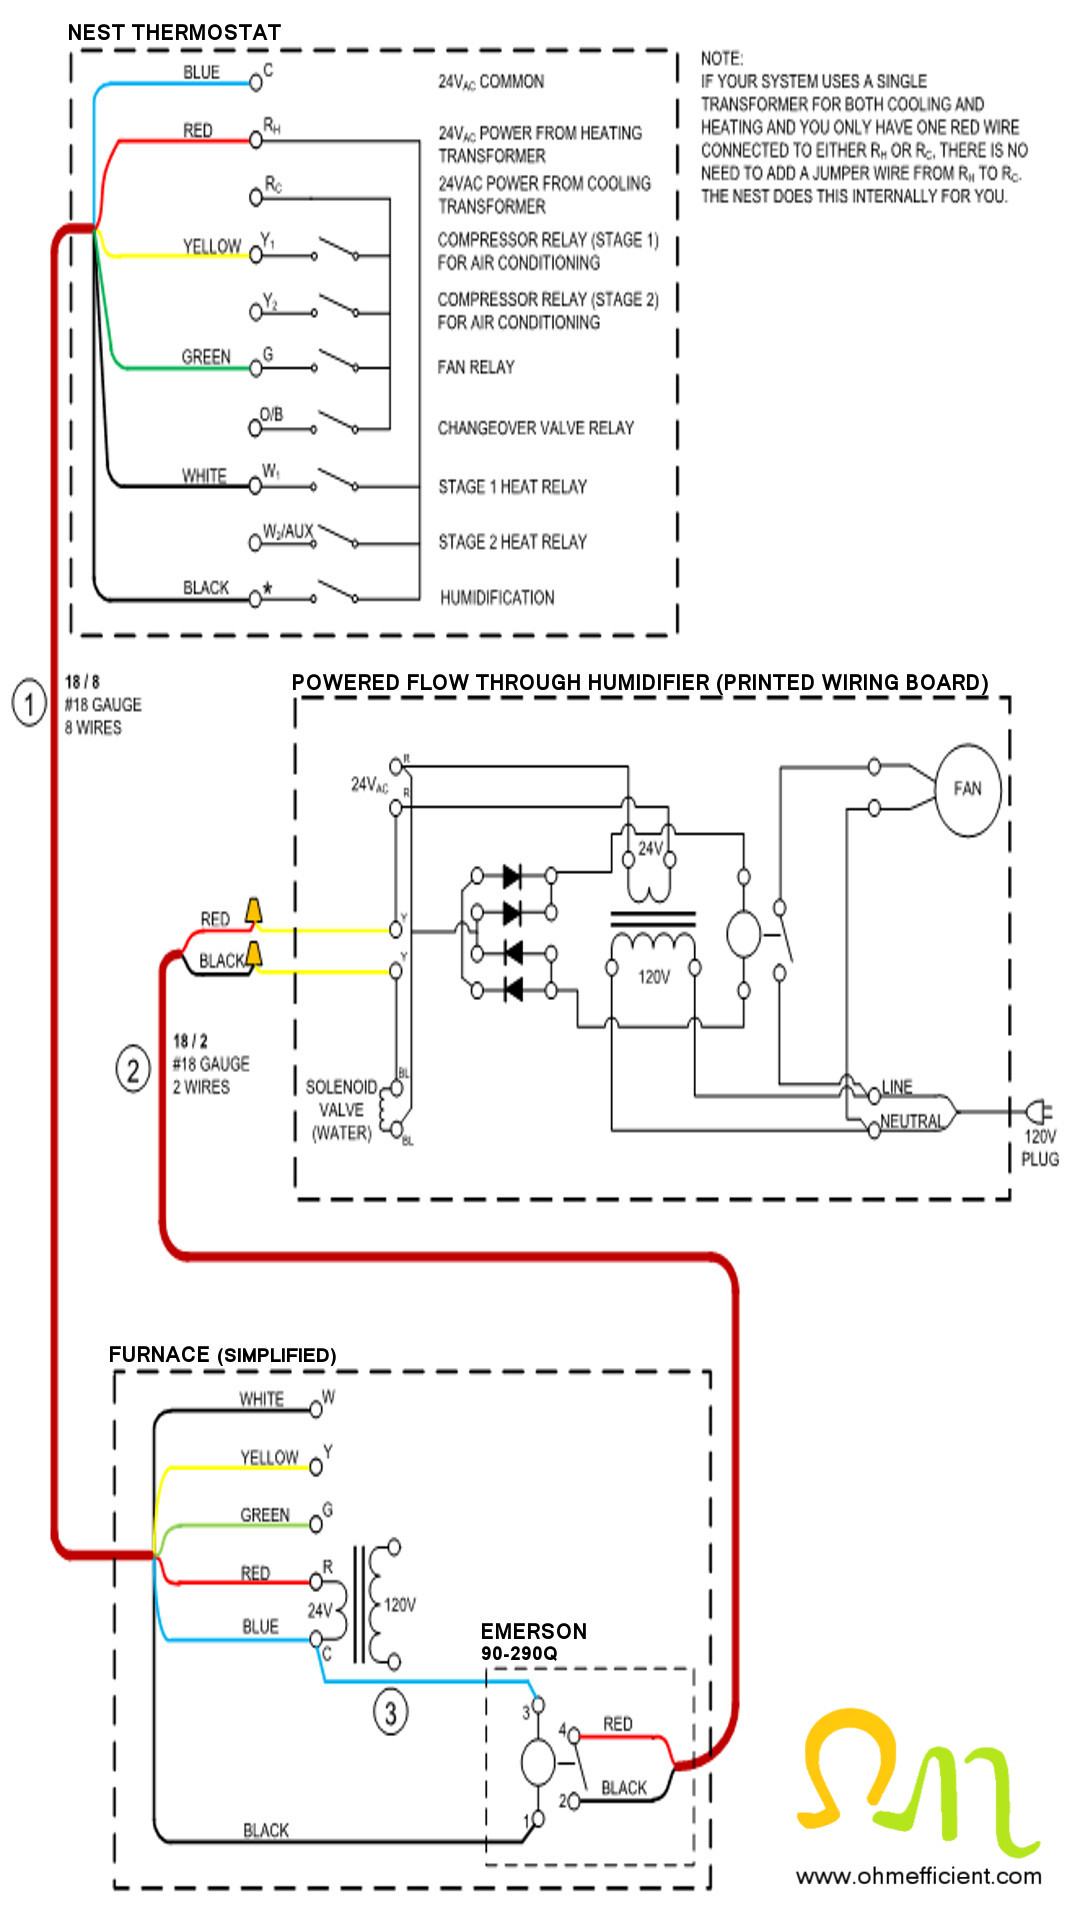 How To Connect & Setup A Nest Thermostat To Function As A Humidistat - Nest Thermostat Wiring Diagram For Hot Air Heat